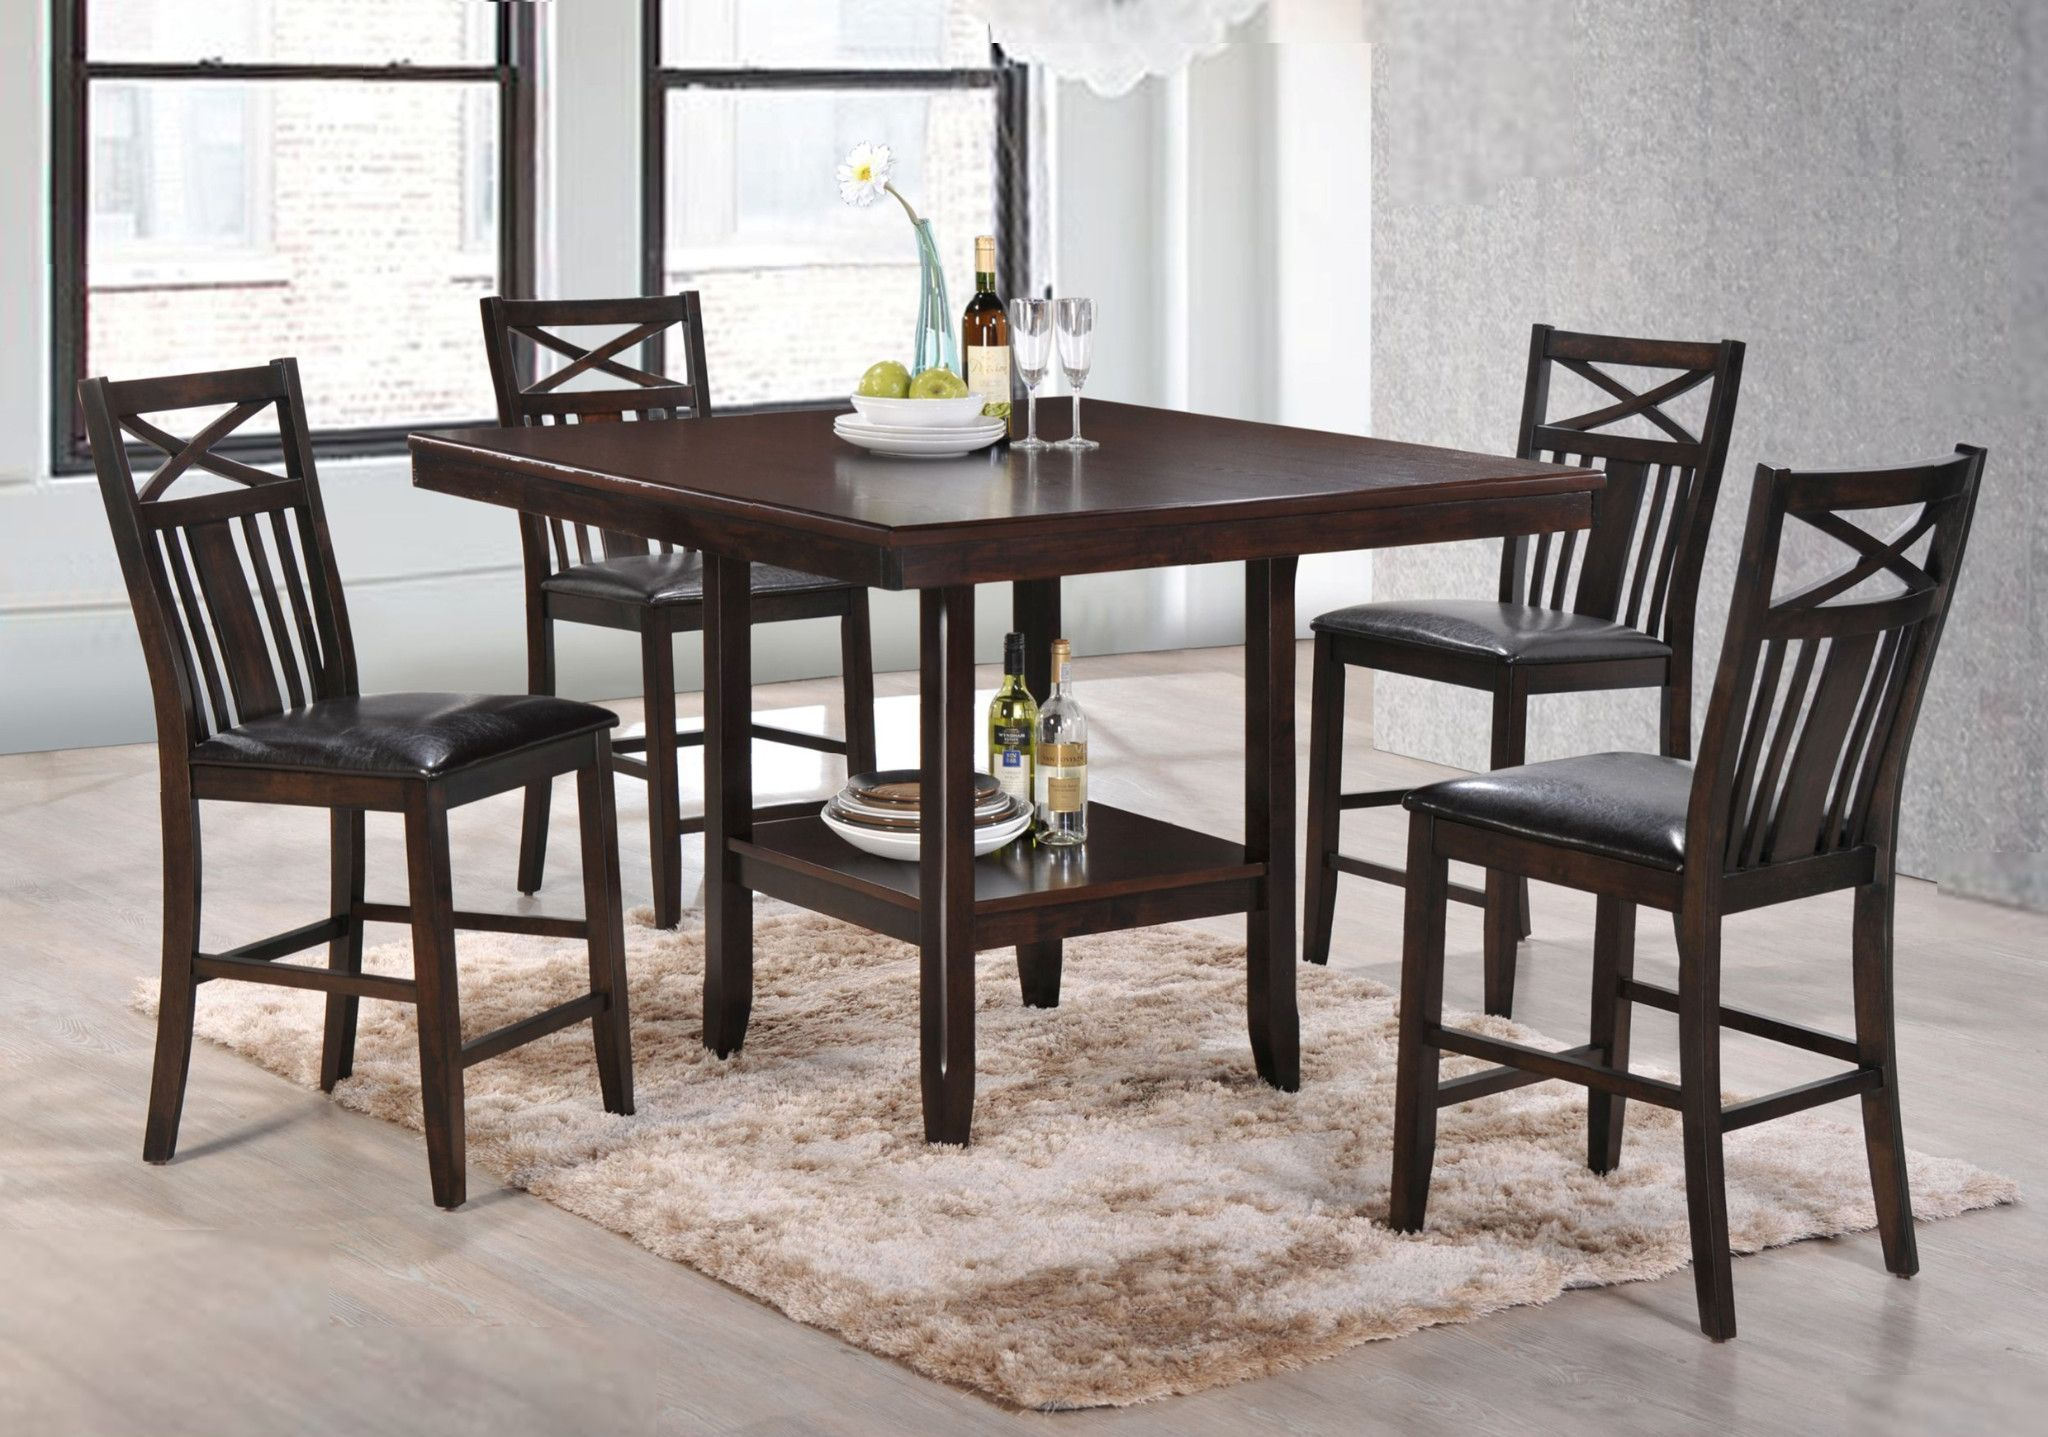 Meghan 5 Piece Counter Height Table And 4 Chairs 549 00 Table 48